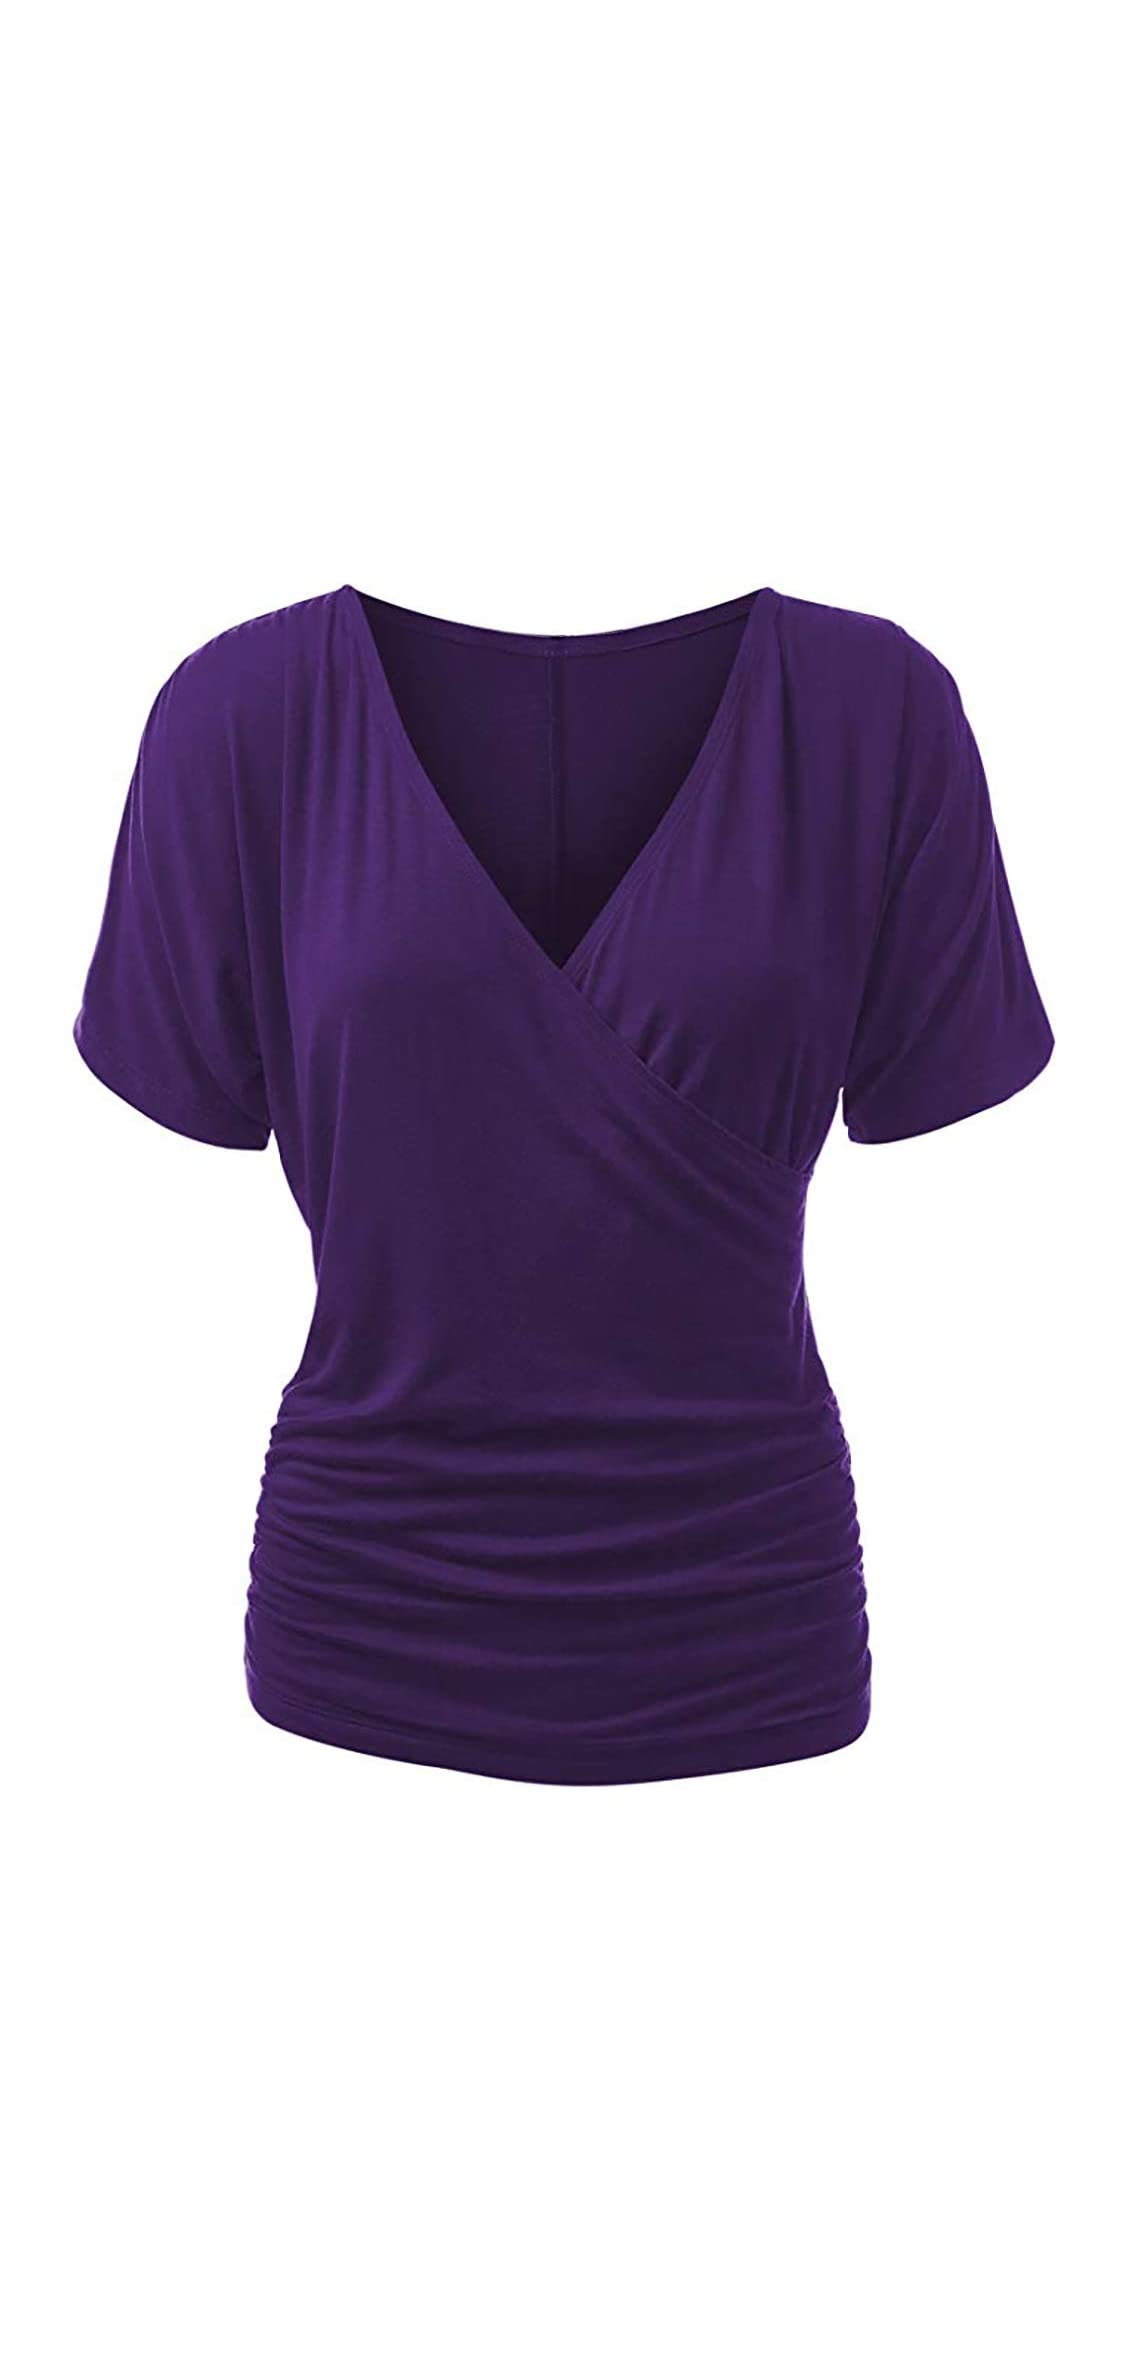 Women's Plus Size Crossover Top V Neck Wrap Front Drape Tops